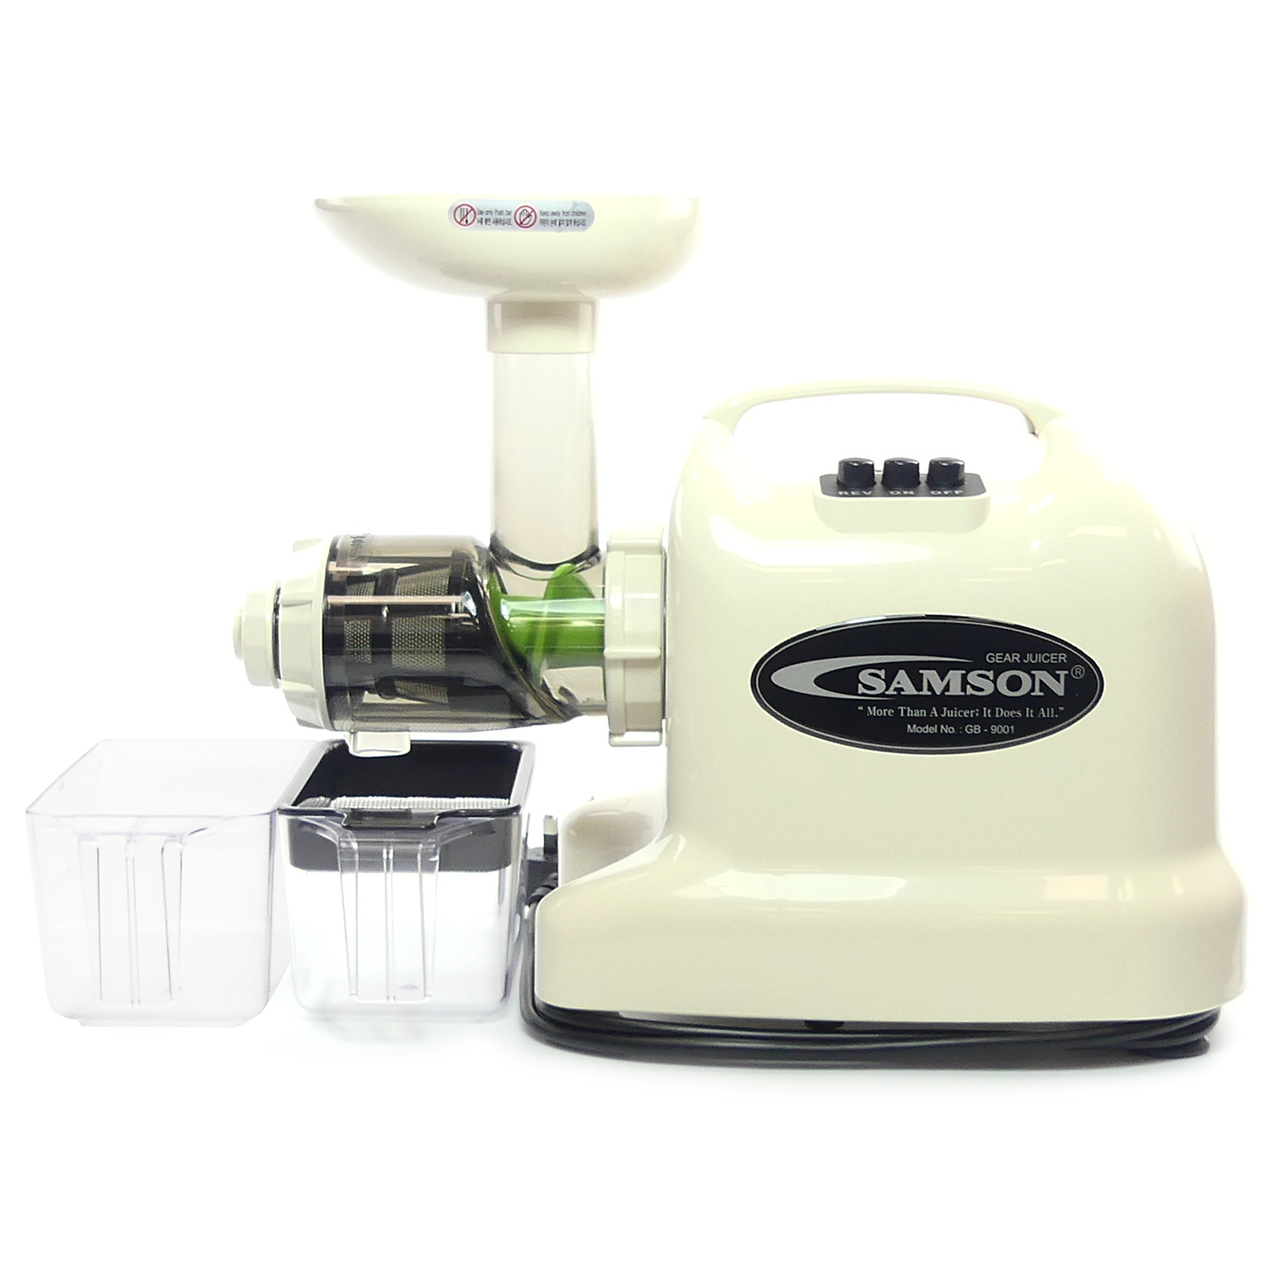 Samson 6 in 1 Juicer GB 9001 - Juicers.ie Ireland\'s No 1 Juicers website